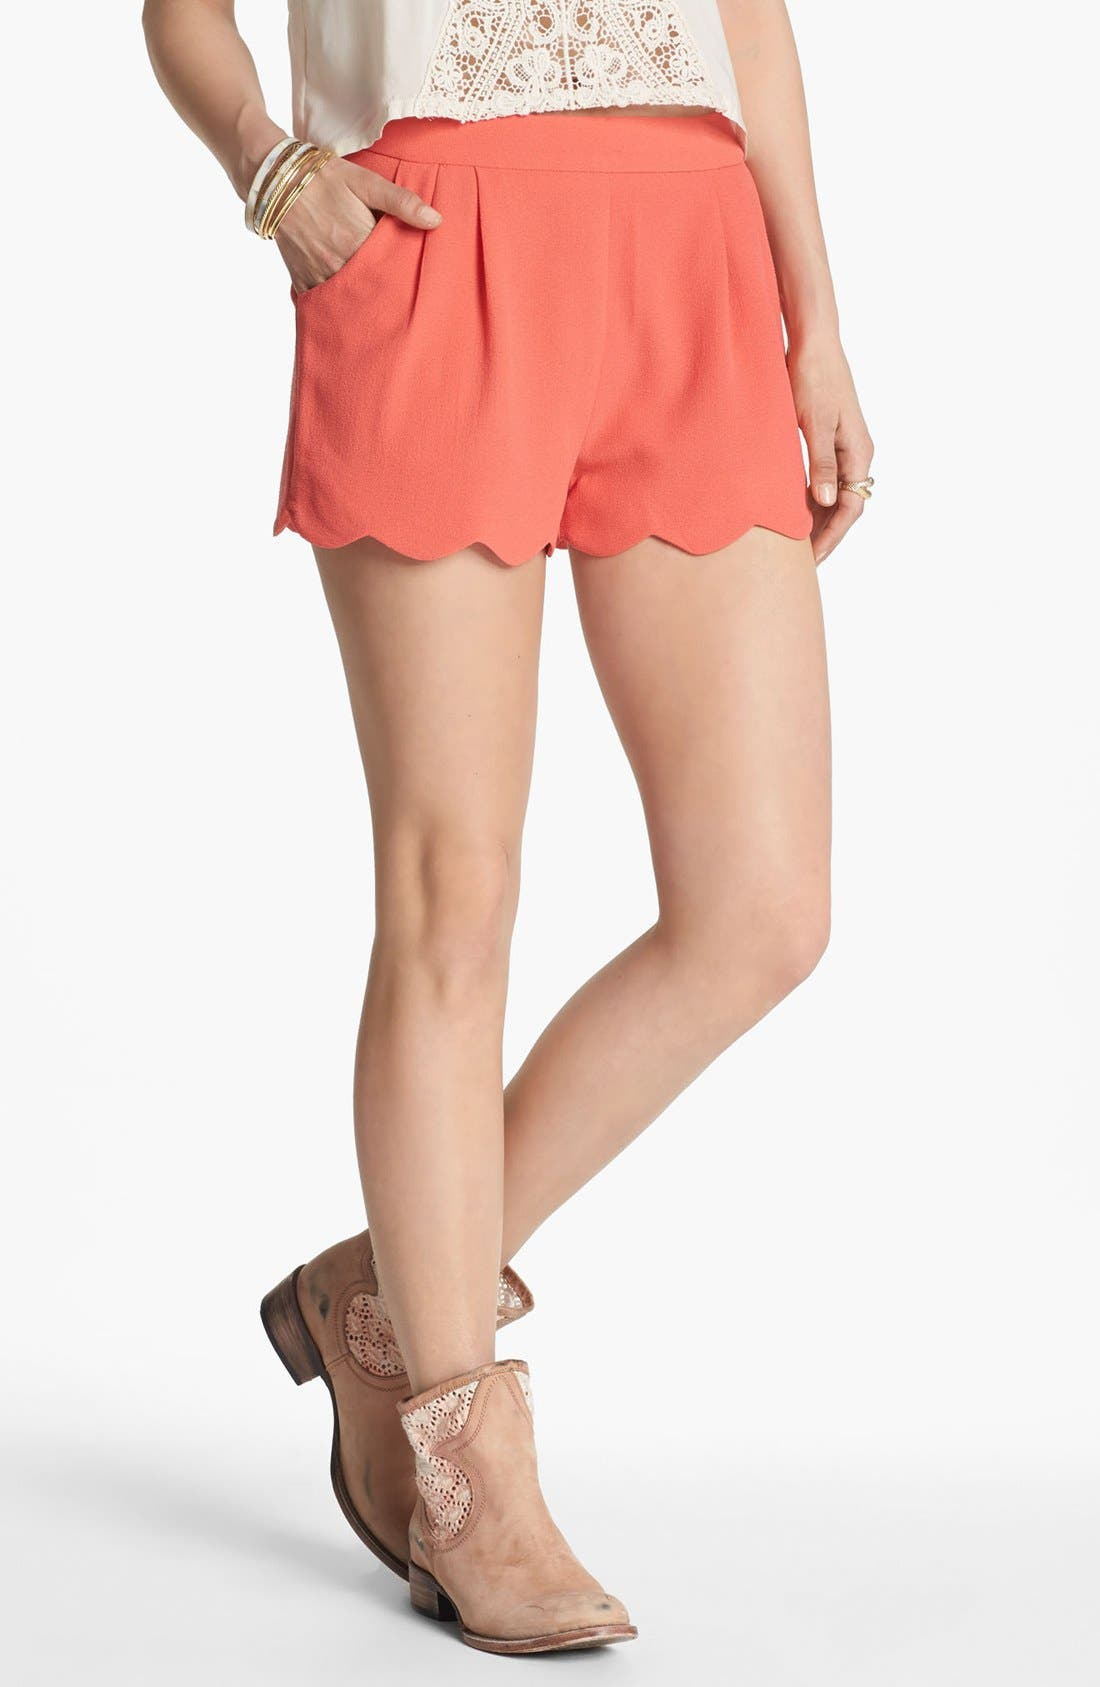 Alternate Image 1 Selected - Lush Scalloped Lace Shorts (Juniors) (Online Only)